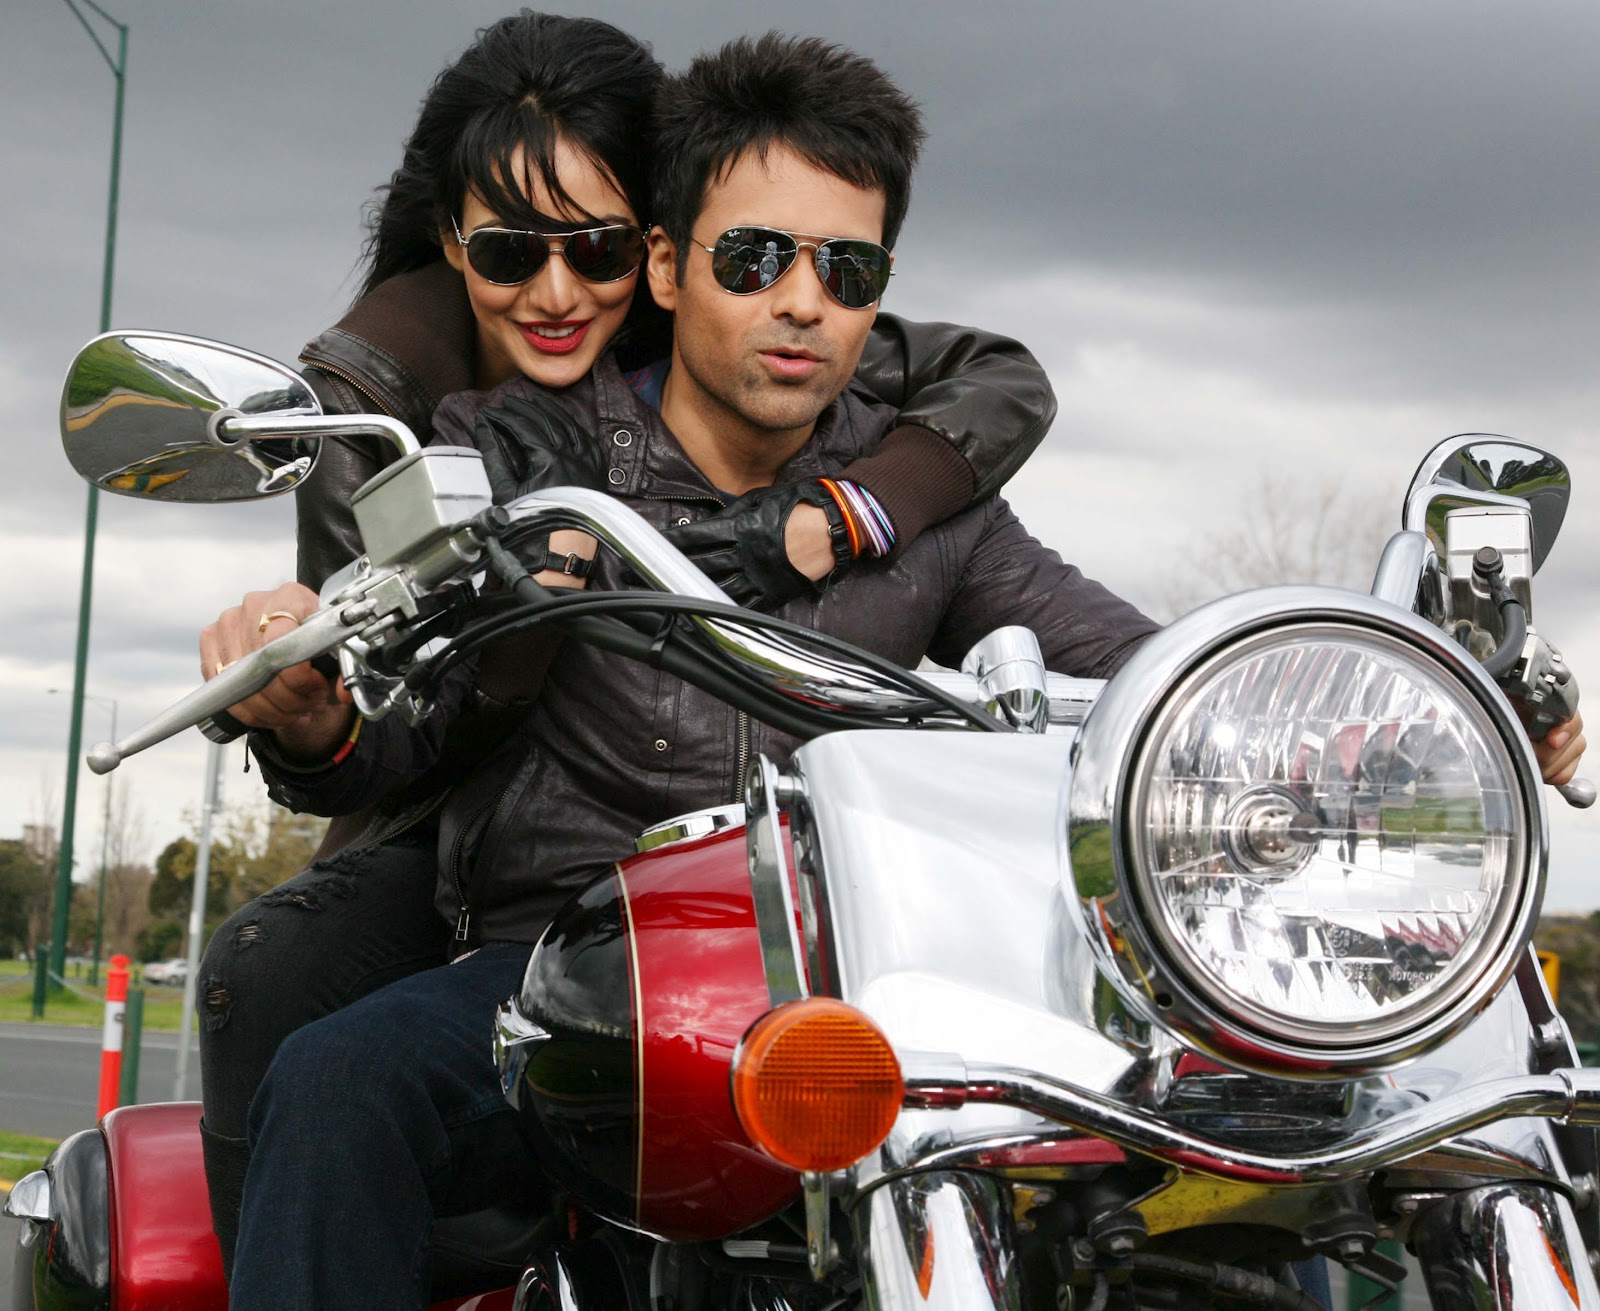 Bikers Quotes Wallpapers Emraan Hashmi Hd Wallpapers High Definition Free